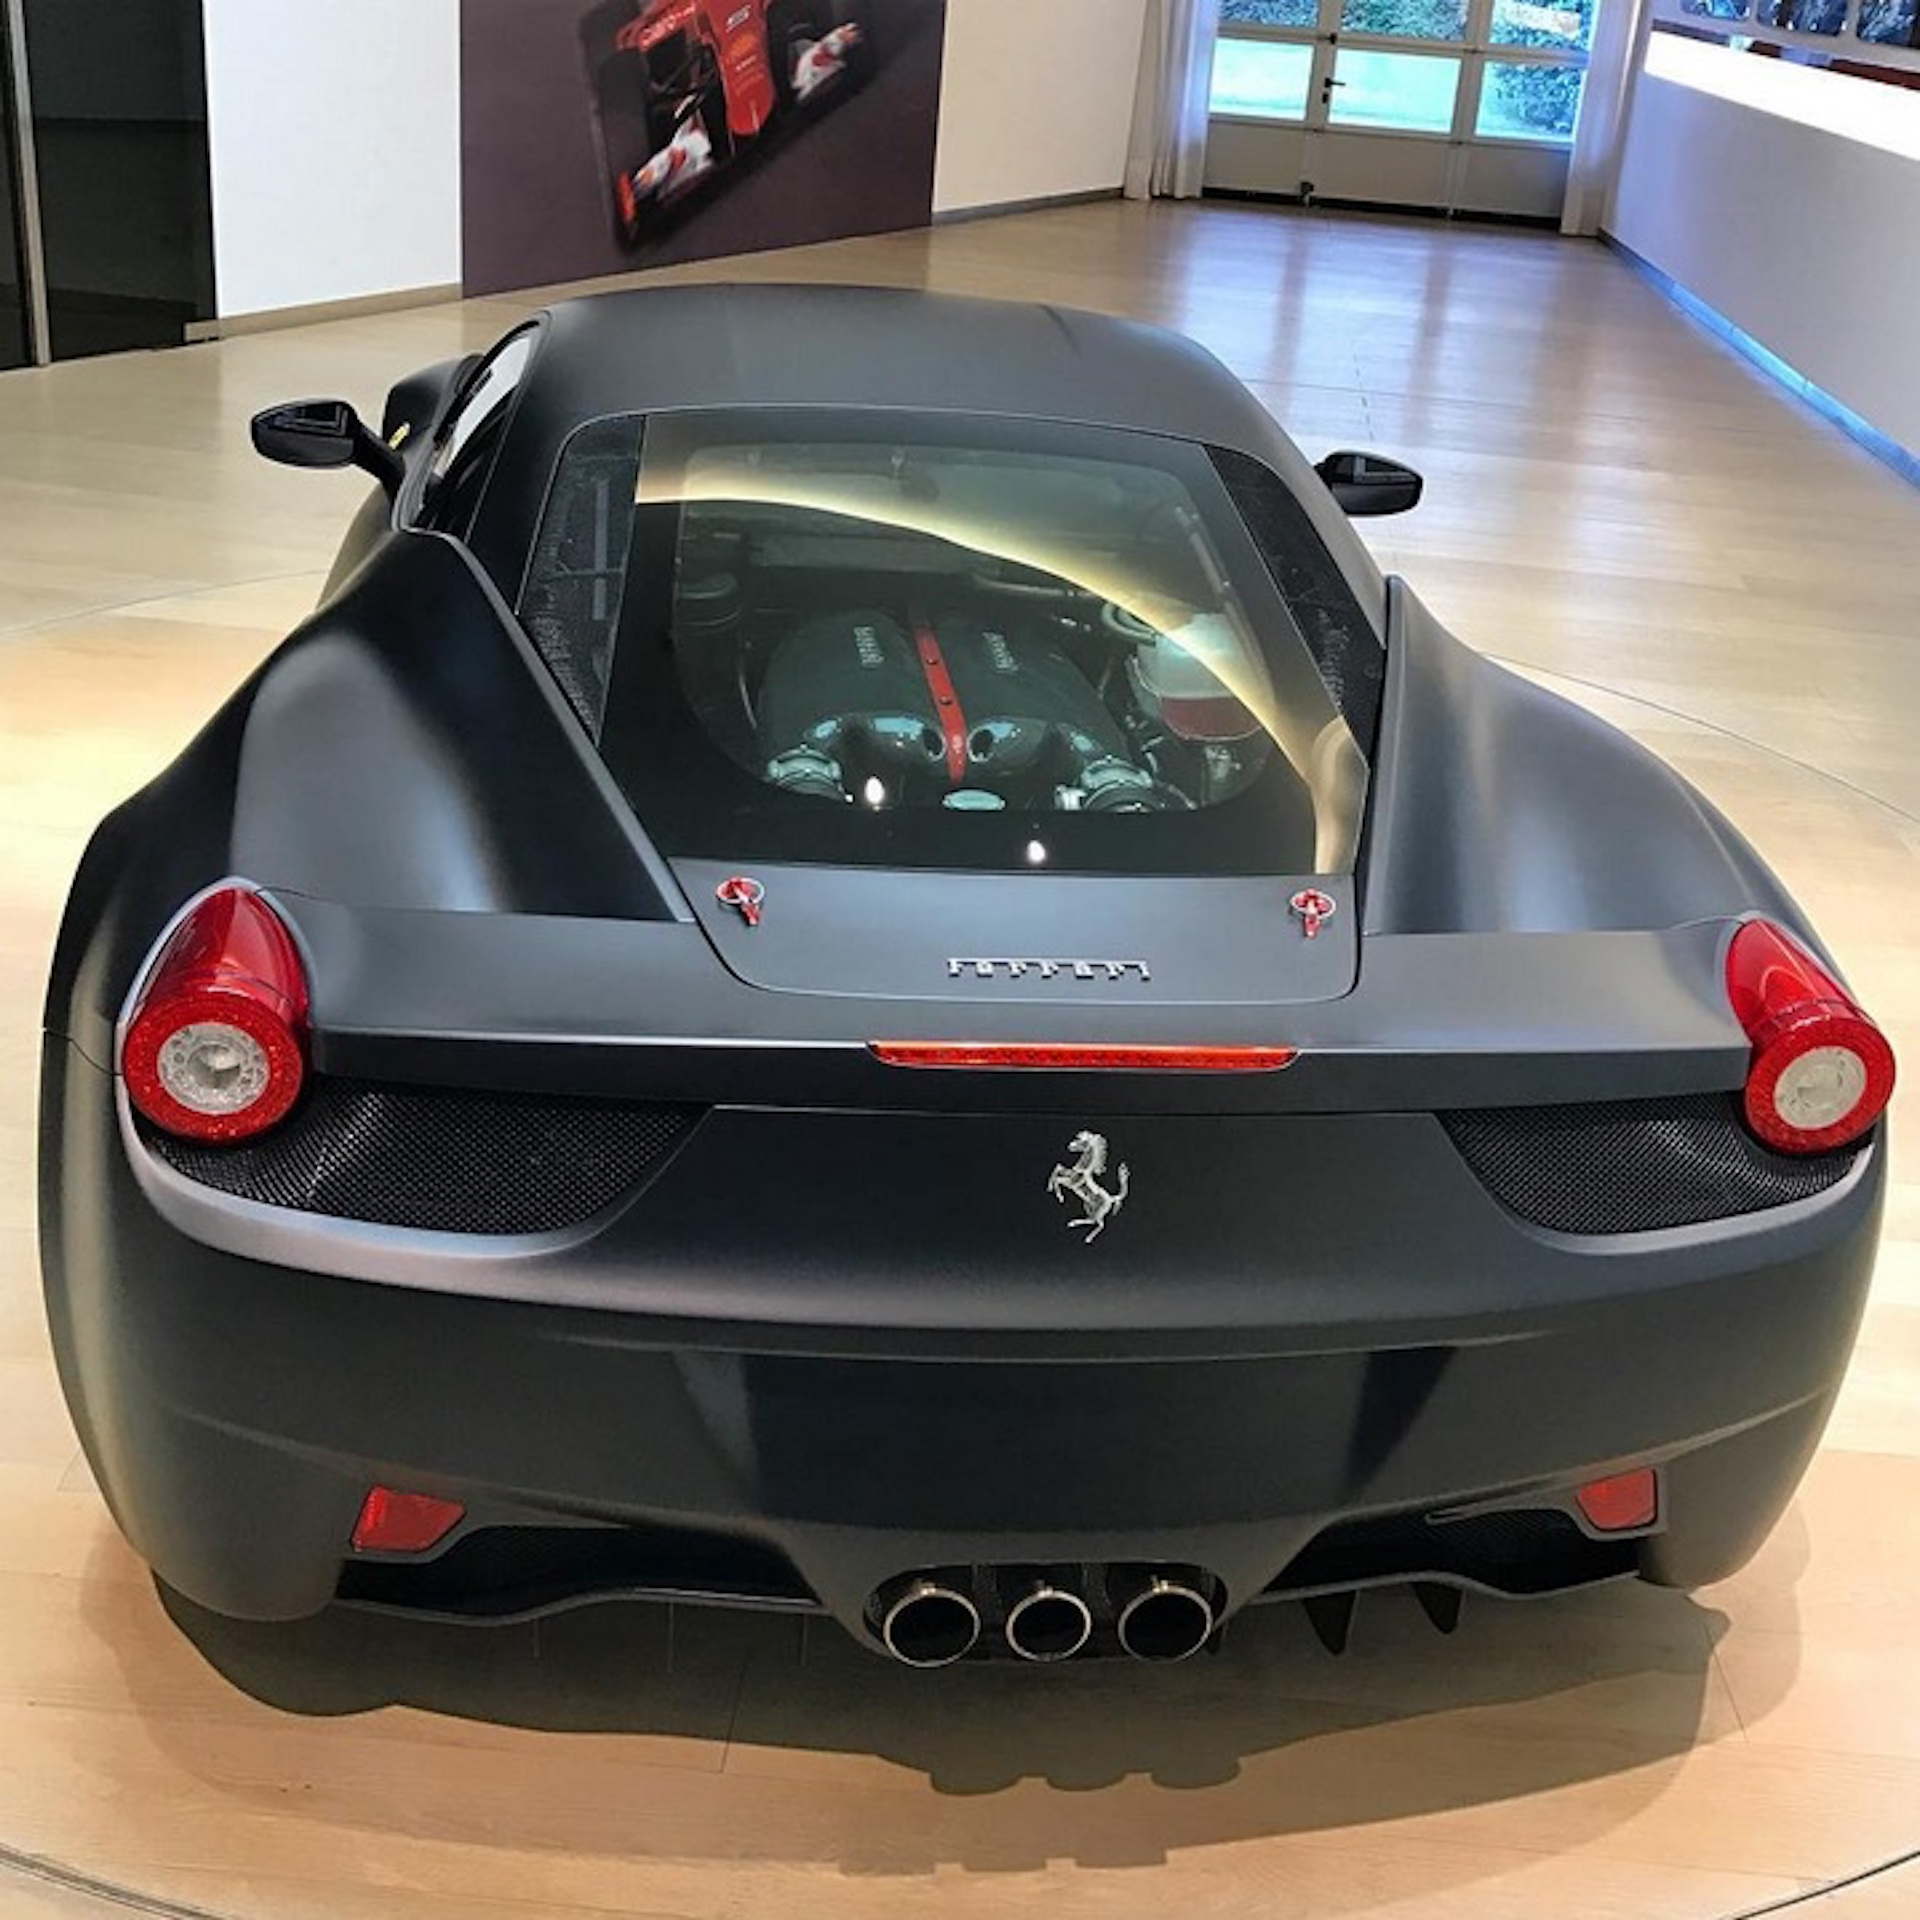 1024805 more Details On Pininfarinas Production Plans For H2 Speed Supercar likewise 1080662 buick May Get New Grand National T Type And Gnx together with 1112549 ferrari May Have Built A 458 Italia With A Laferrari V 12 in addition 1093103 former Lotus Ceo Dany Bahar Returns As Boss Of Modena Tuning Firm together with Jeep Wrangler With Atx Wheels And Off Road Tires. on s who drive jeep wrangler